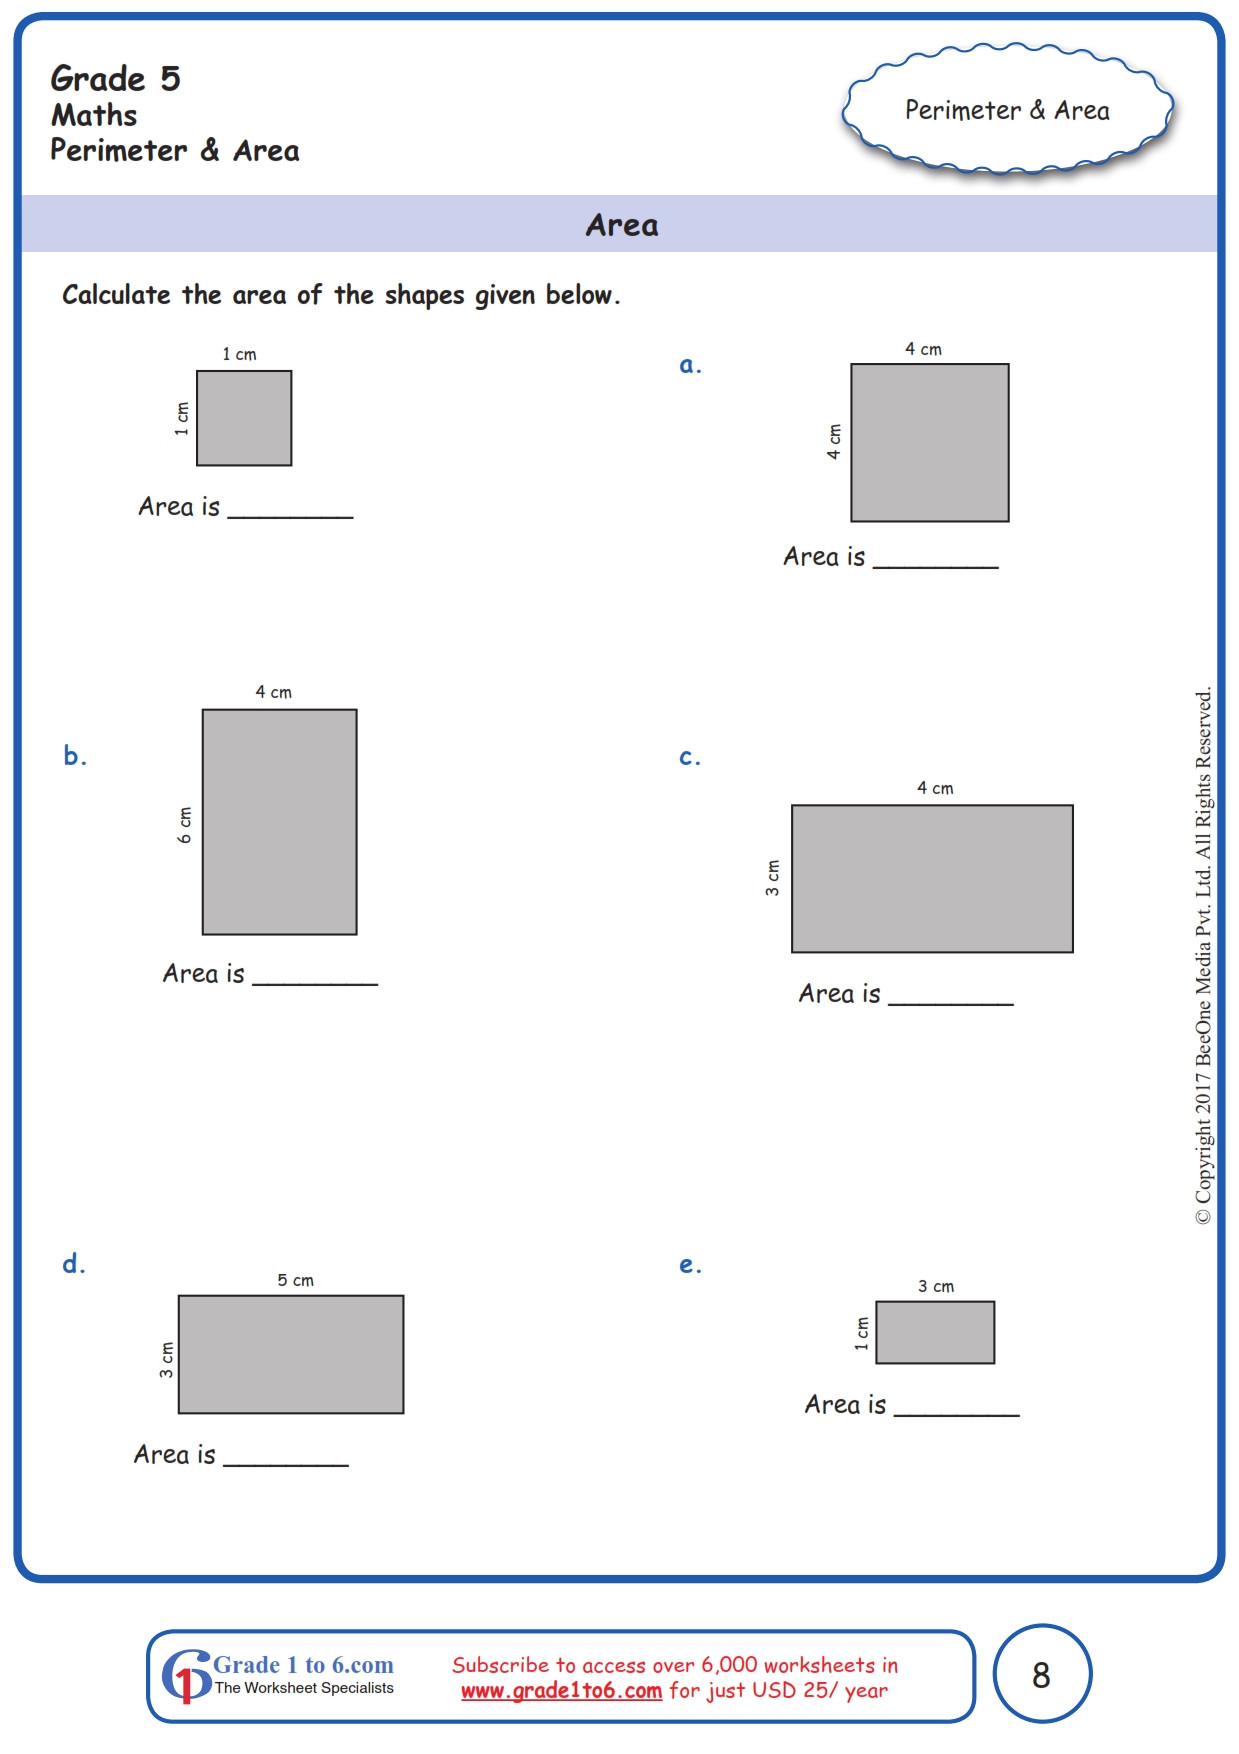 2nd Grade Perimeter Worksheets Free Perimeter and area Worksheets Grade 5